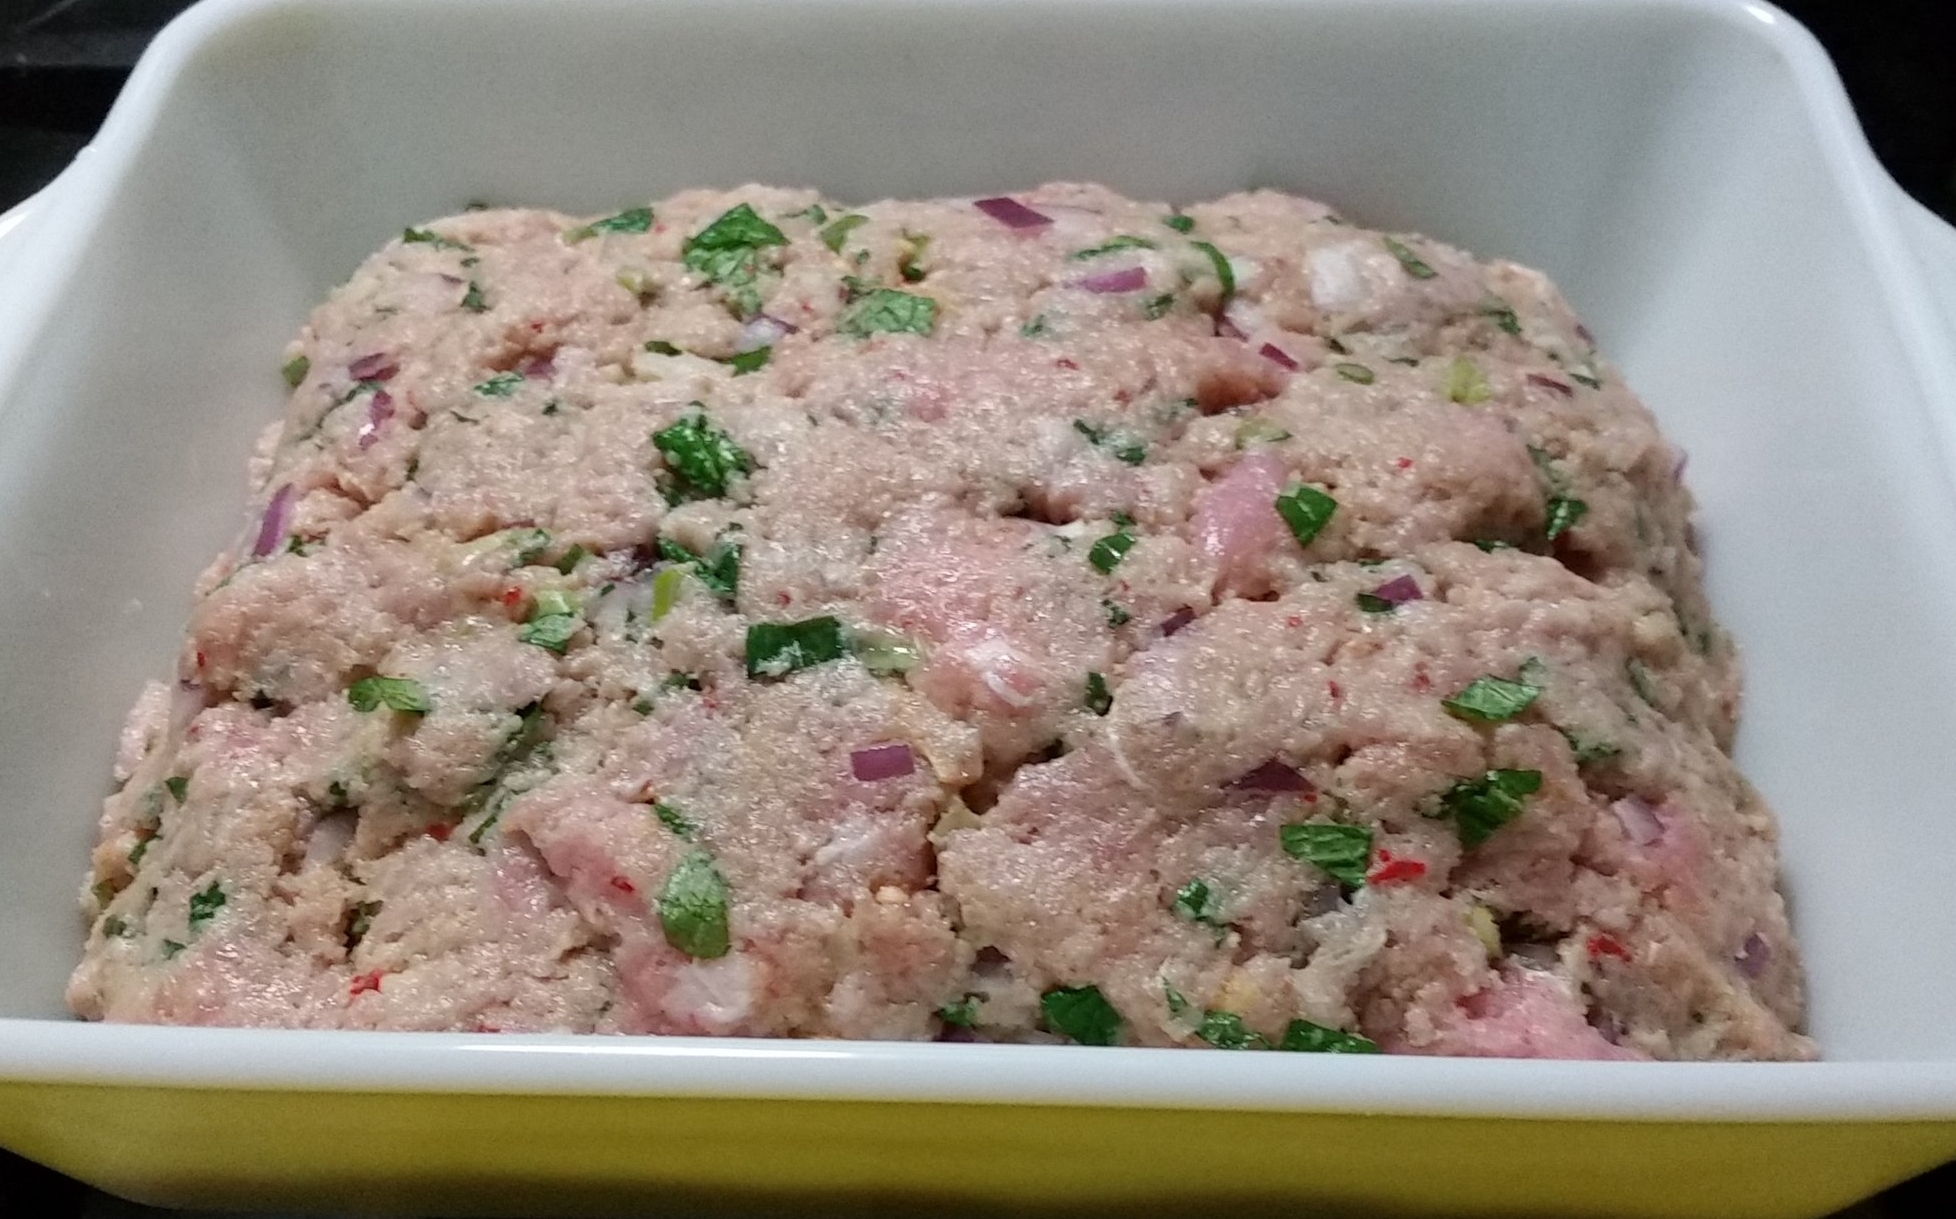 This is a raw meatloaf. Imagine it's cooked.  Enjoy.